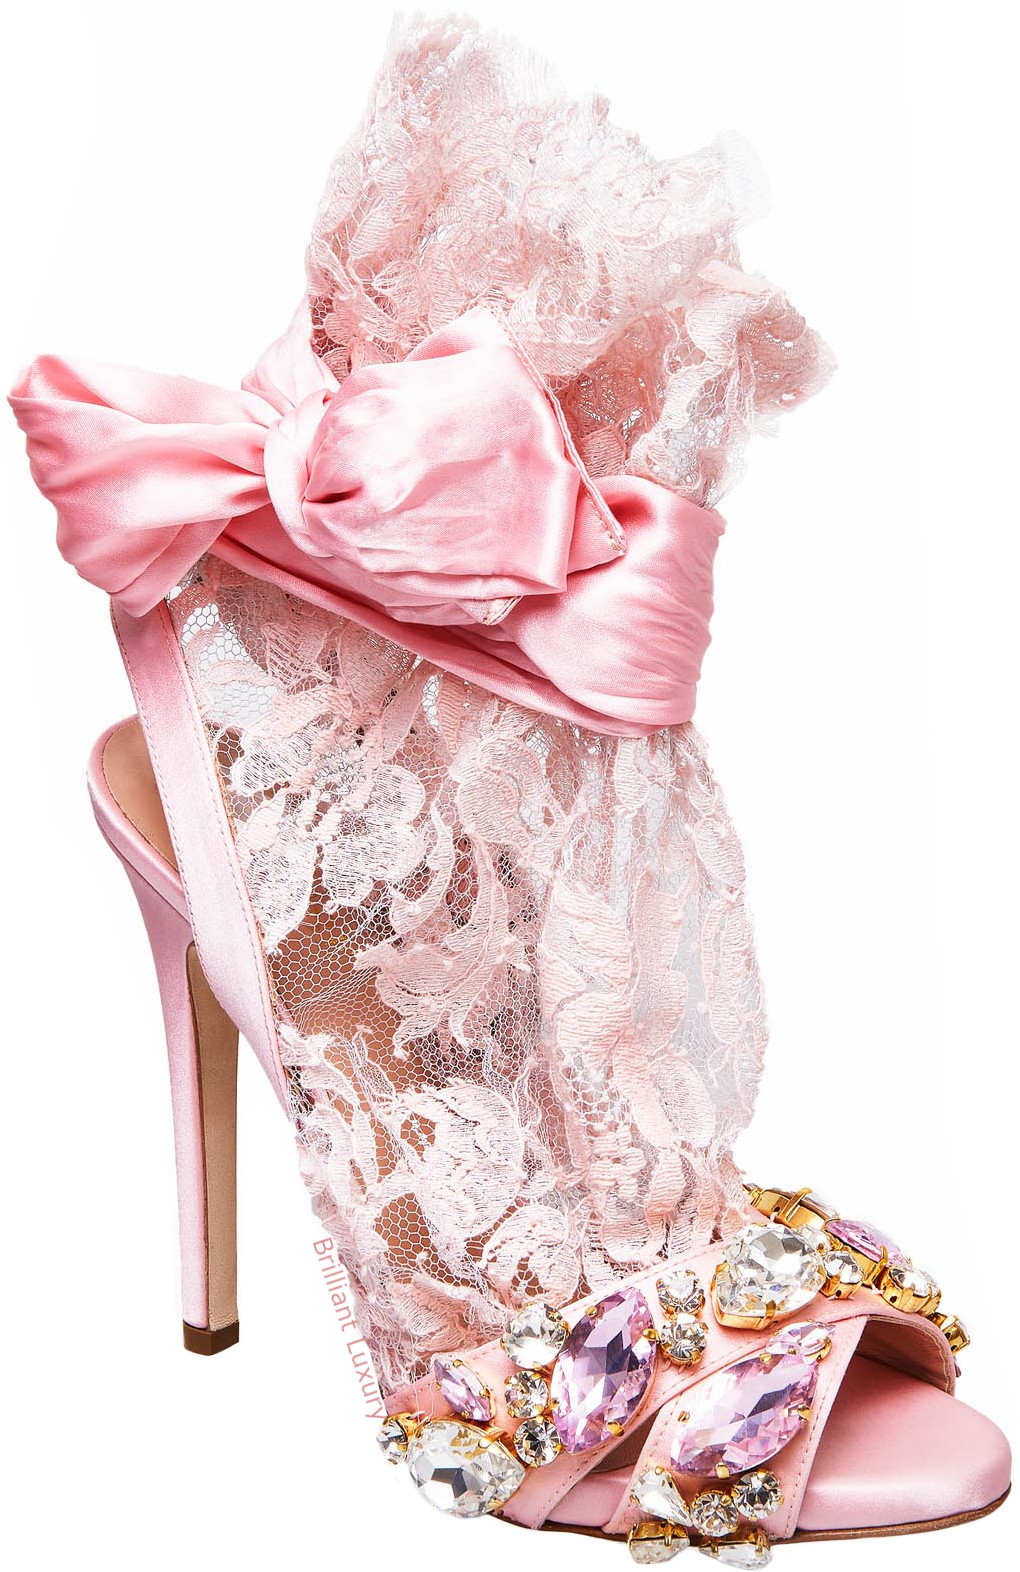 Gedebe bejeweled satin lace sandals in pink